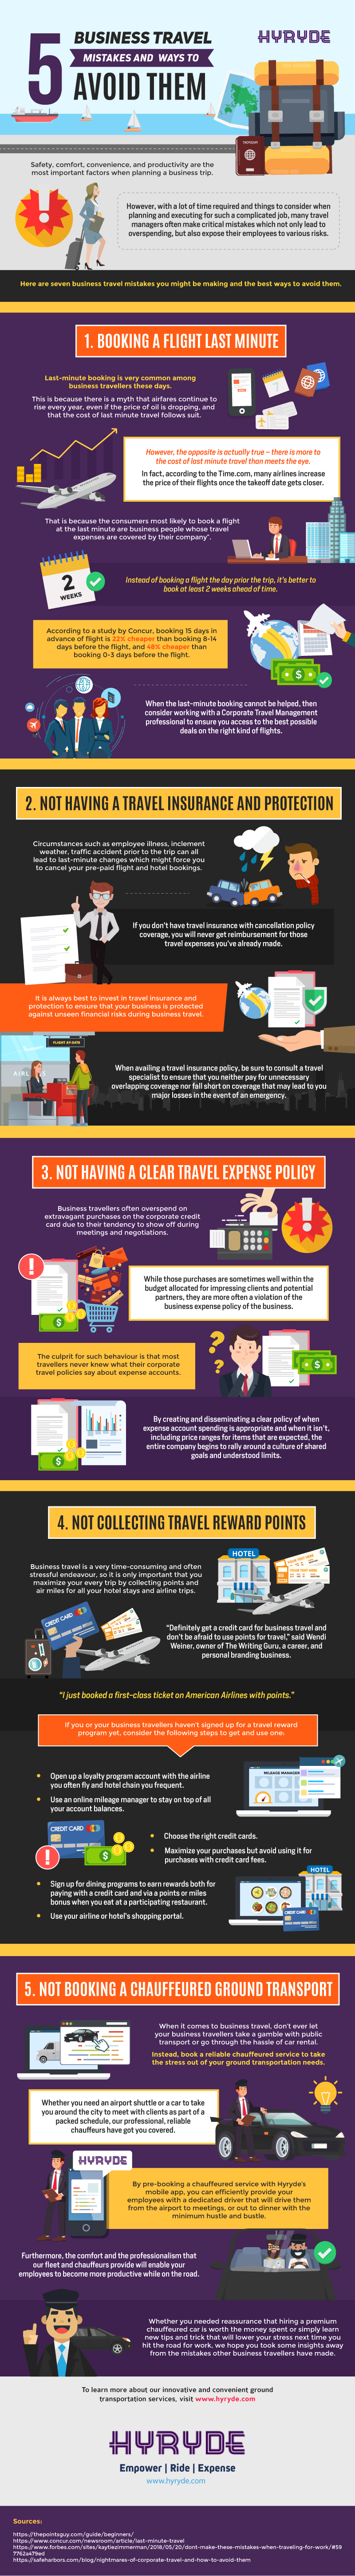 5 Travel Mistakes that Add Unnecessary Stress to Business Travel and How to Prevent Them - Infographic